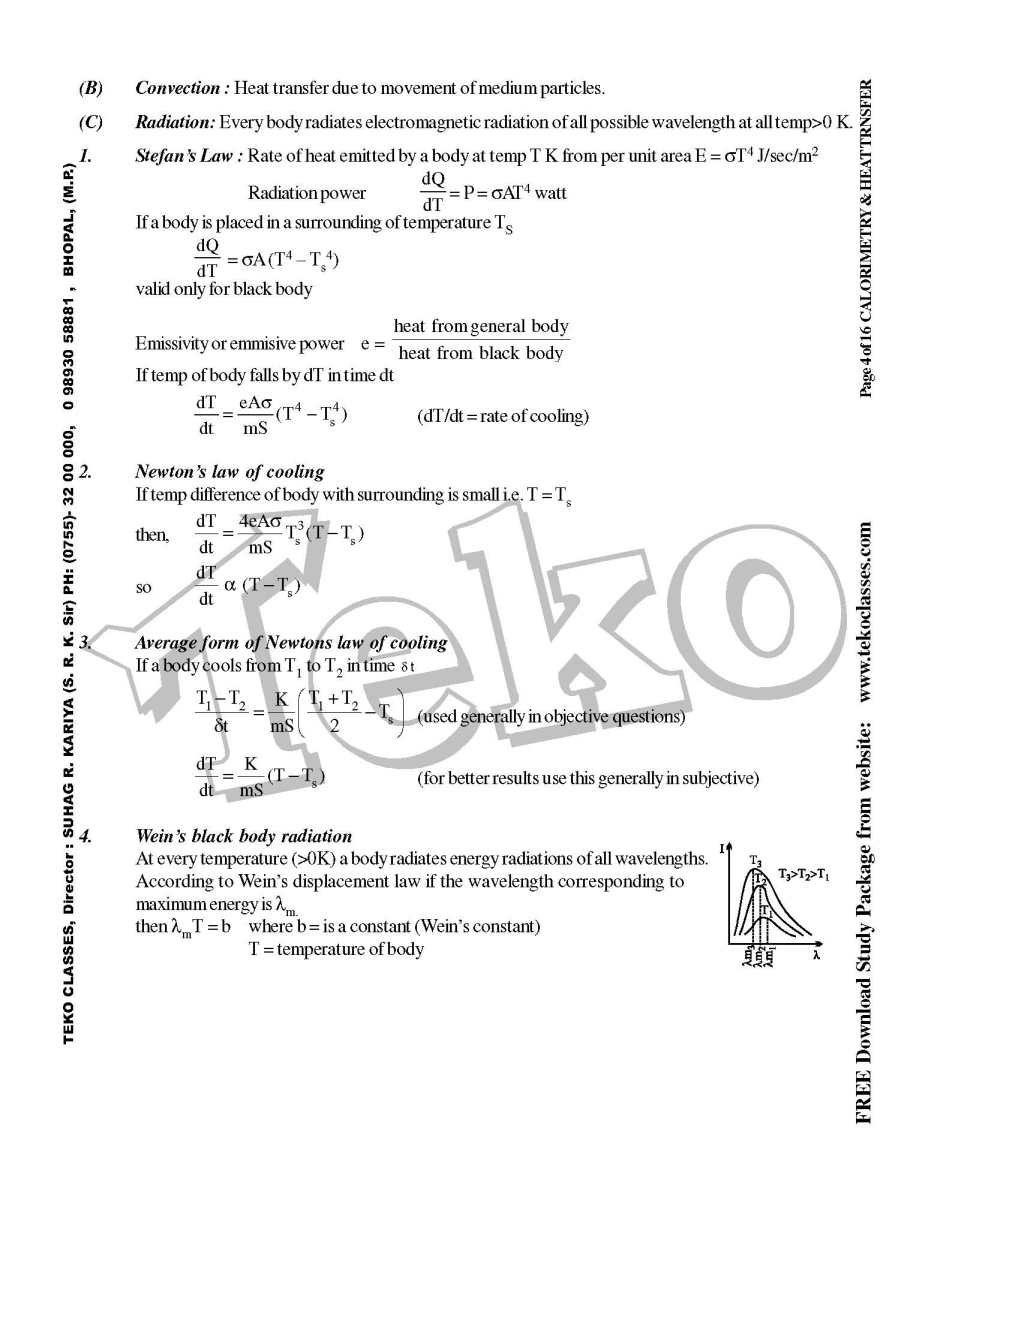 Physics Notes for IIT JEE Free Download - 2018 2019 EduVark